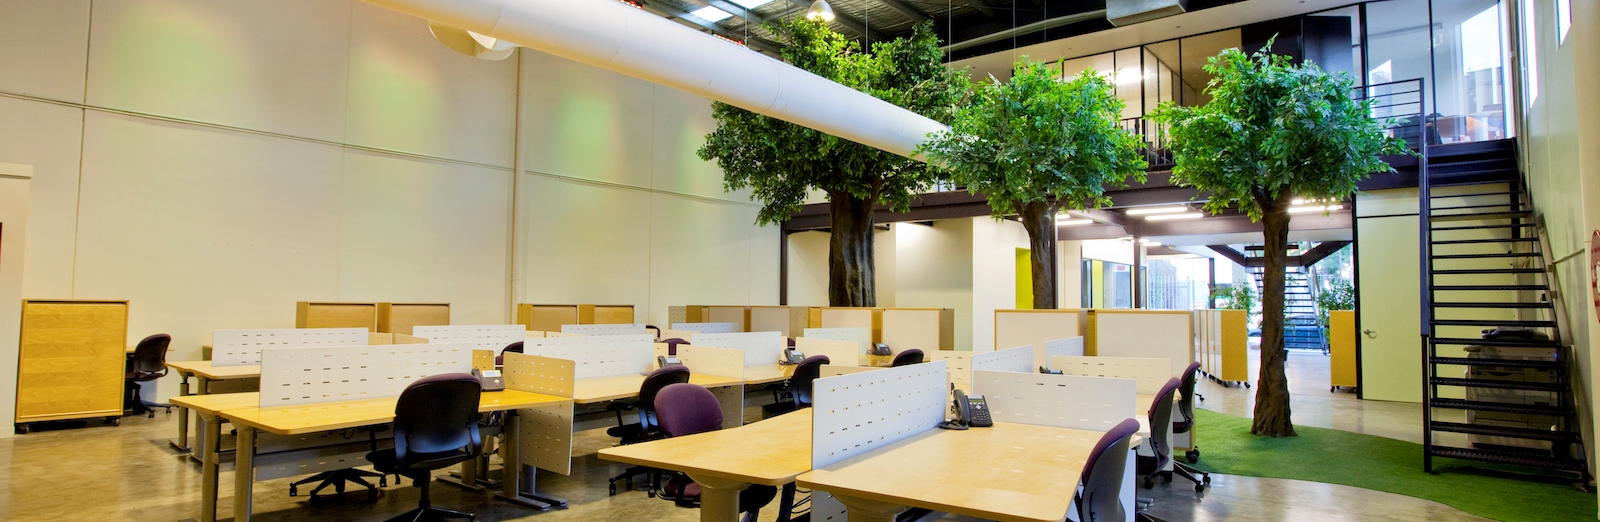 Inside the LaunchPad Coworking Space